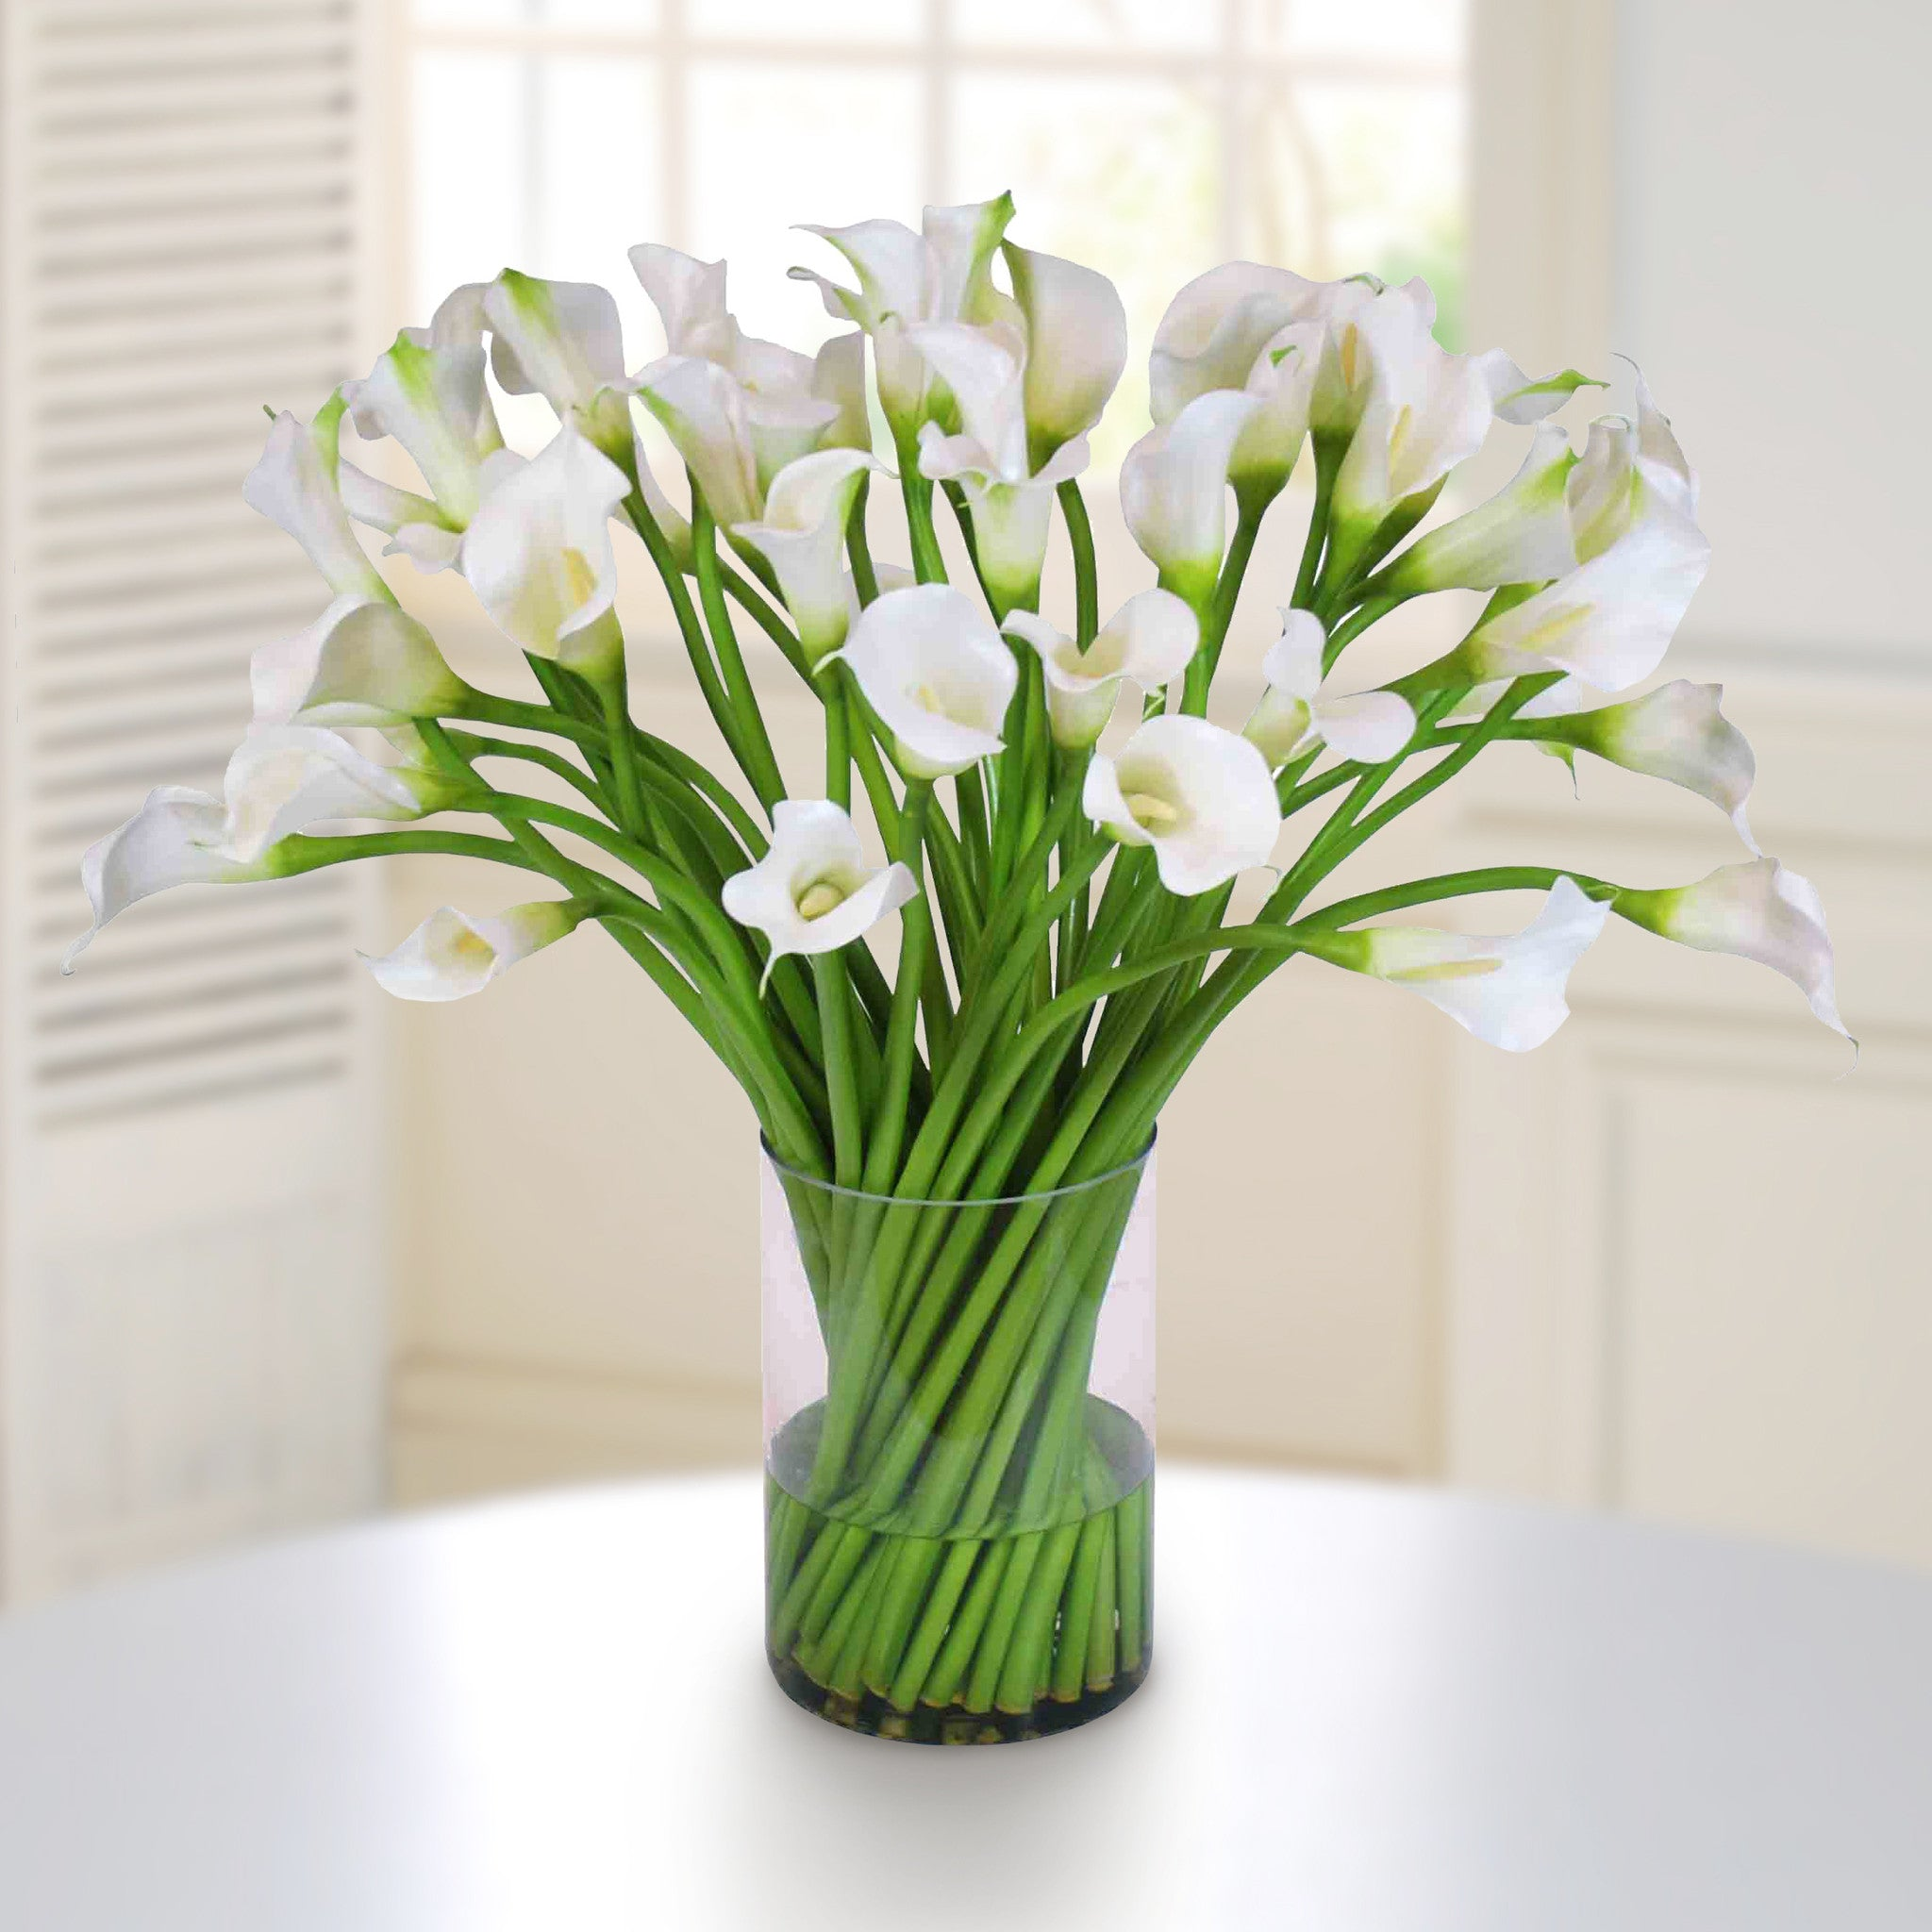 Hydrangeas in footed glass winward home finest permanent botanicals calla lily in clear cylinder vase whd083 ww winward home faux floral reviewsmspy